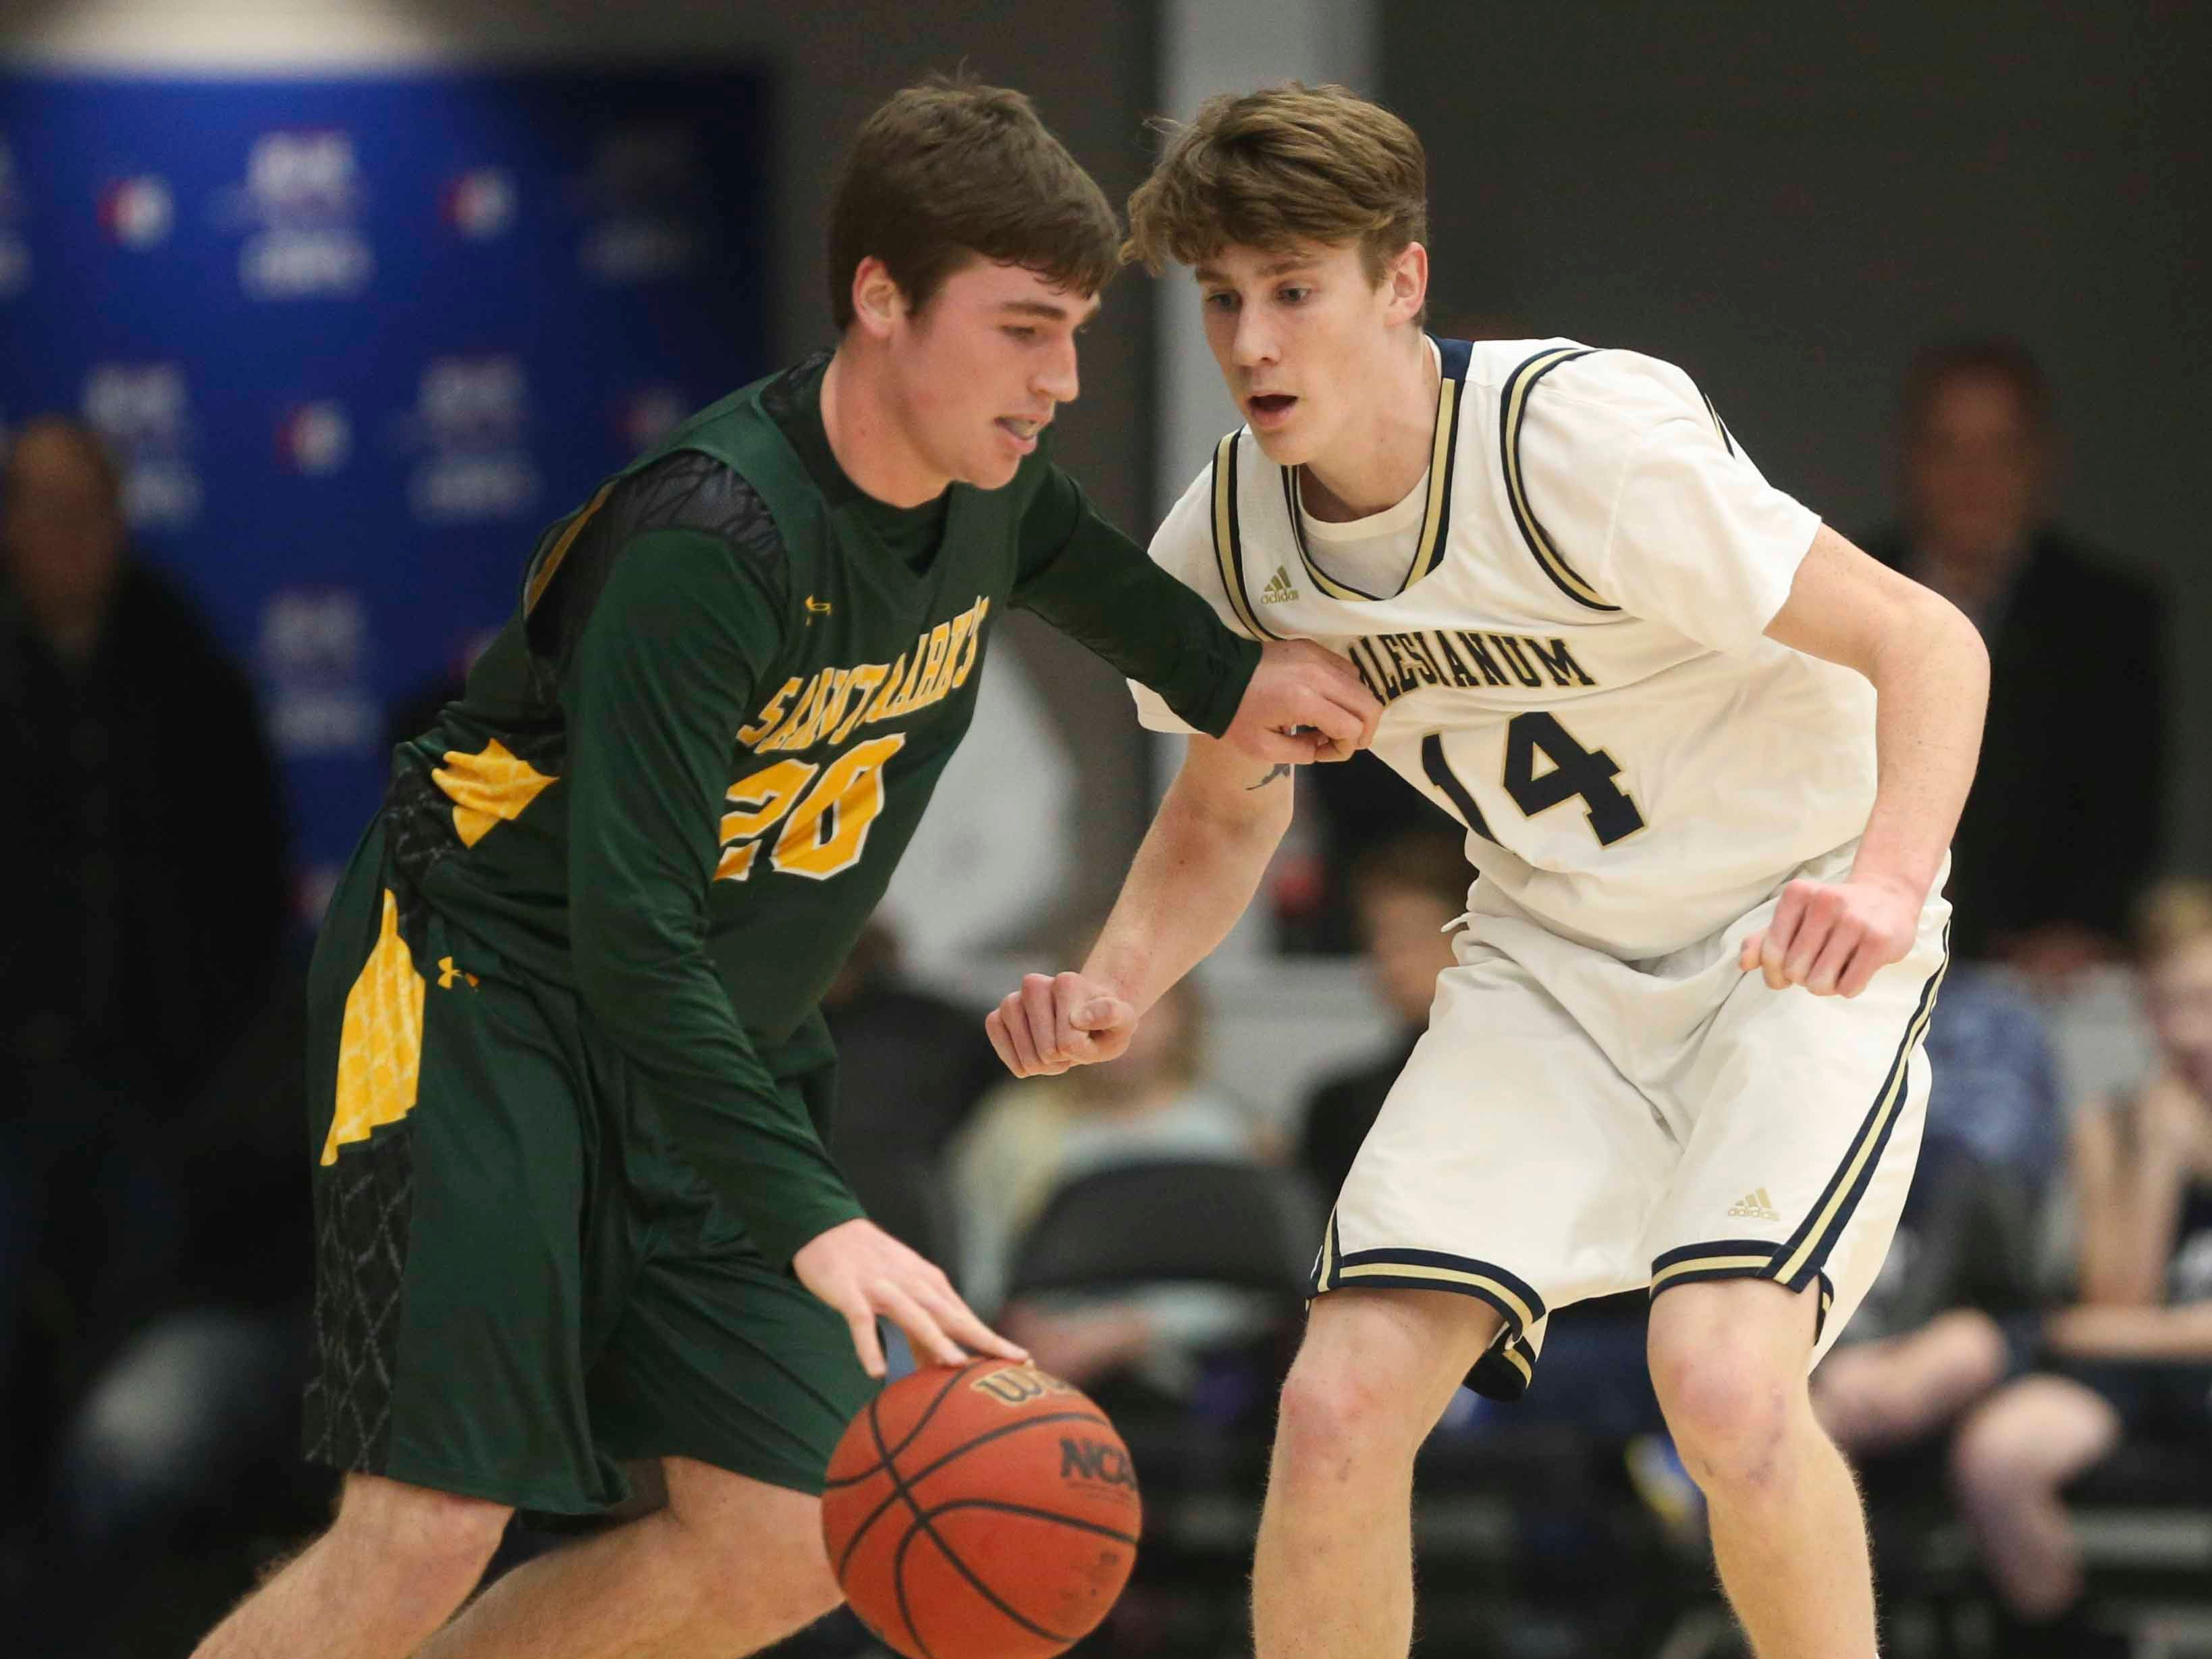 St. Mark's Eric Ludman (left) is guarded by Salesianum's Sean Regan in the SL24 Memorial Basketball Classic at the 76ers Fieldhouse in Wilmington Friday.